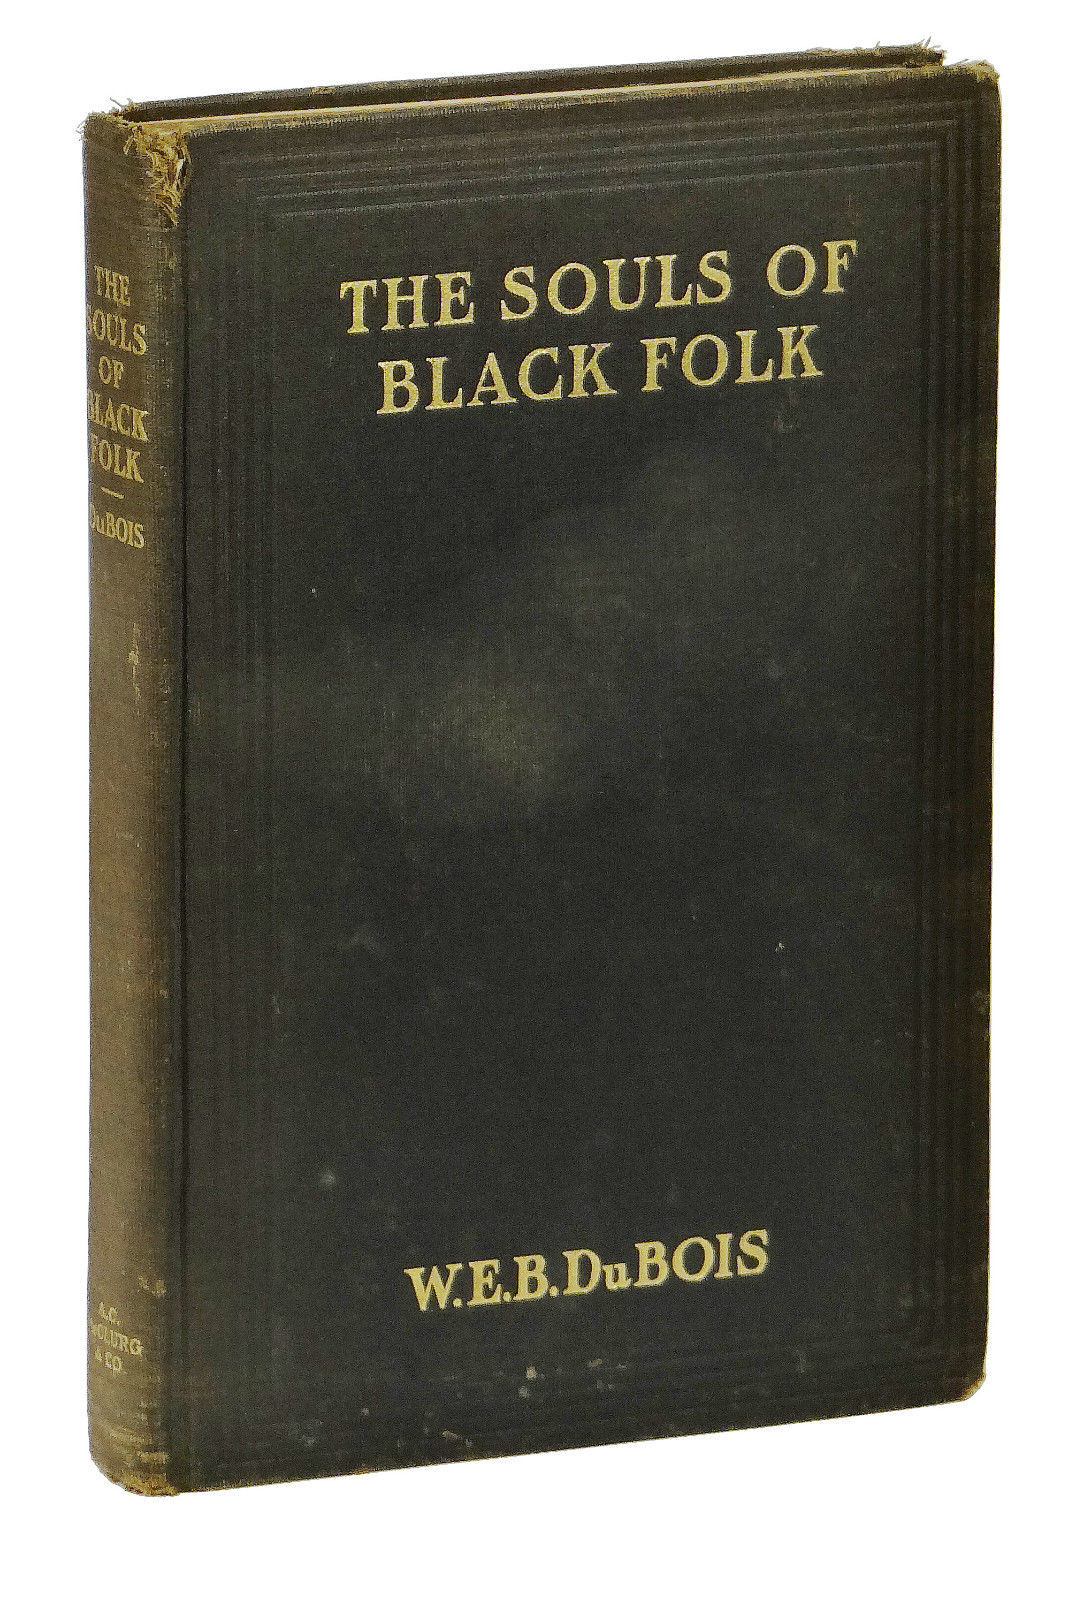 an analysis of the veil in souls of black folk by w e b du bois The problem of the twentieth century is the problem of the color-line few sentences have proven as prophetic as this one, taken from the first paragraph of web du bois' the souls of black folk, published in 1903.